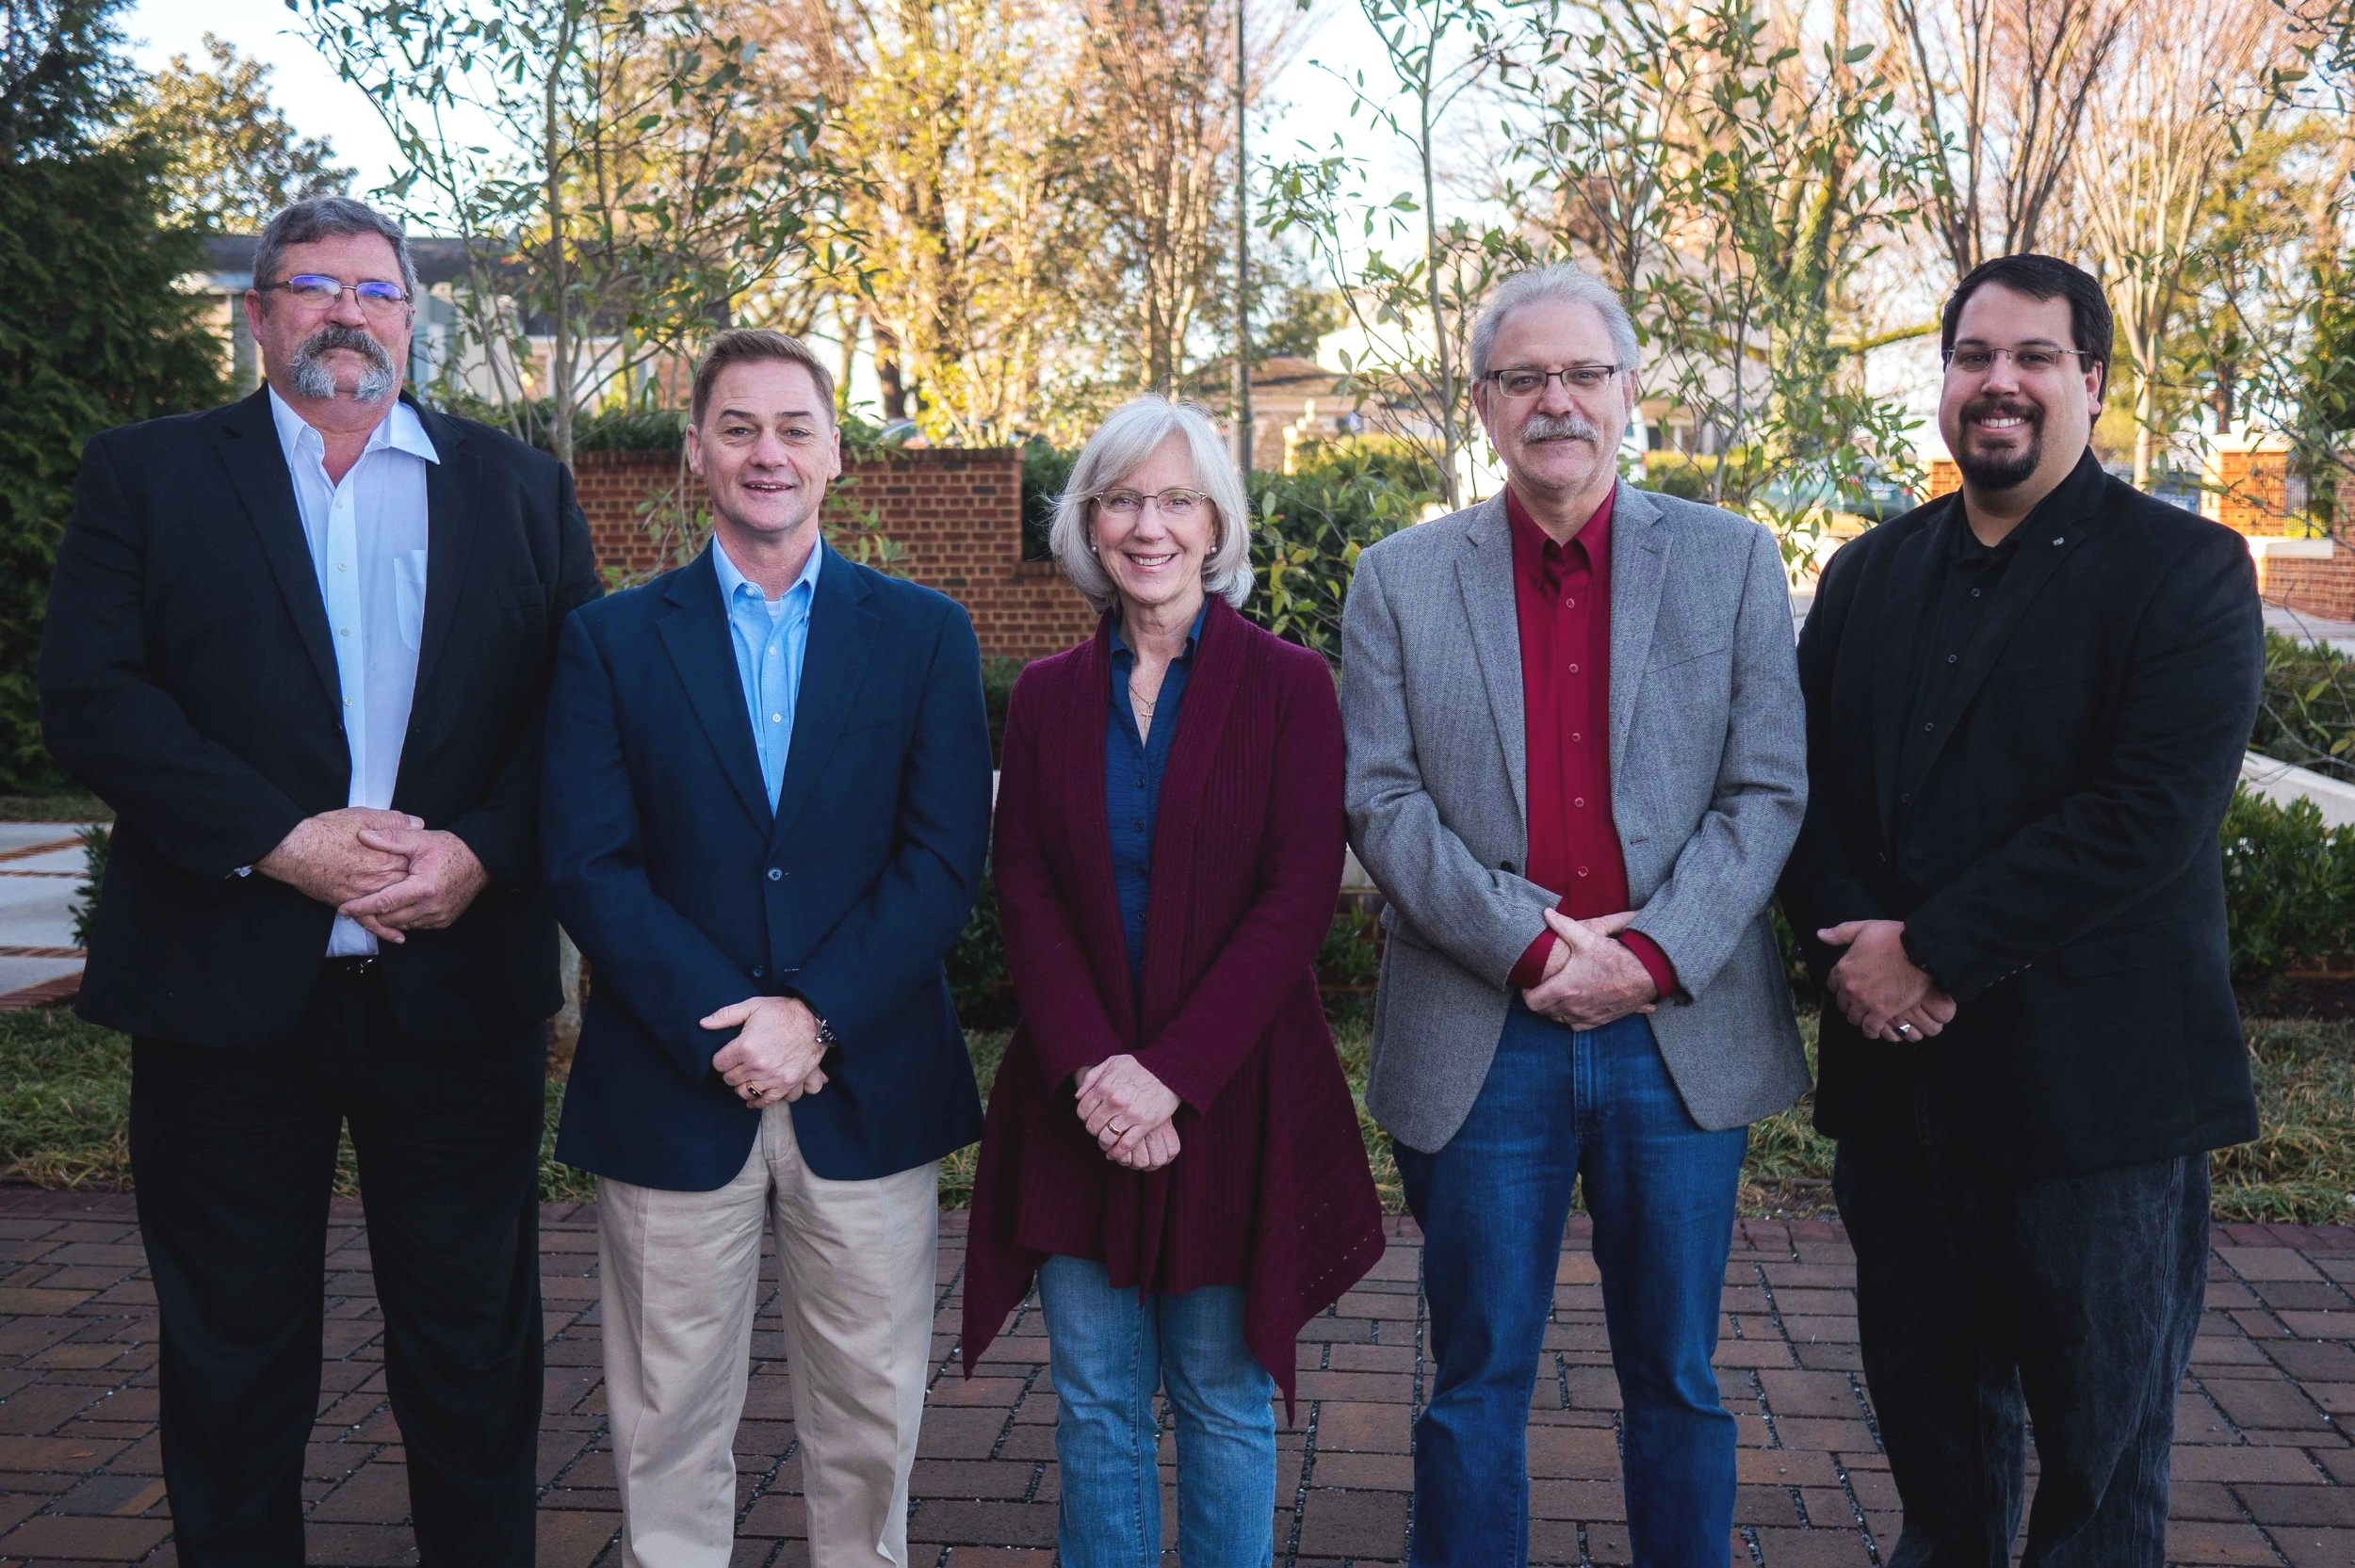 Together With Hope - Board of Directors | (Left to Right) Stephen Parke, James Cook, Kathy Bogacz, Jerry Bogacz & Jonathan Giles